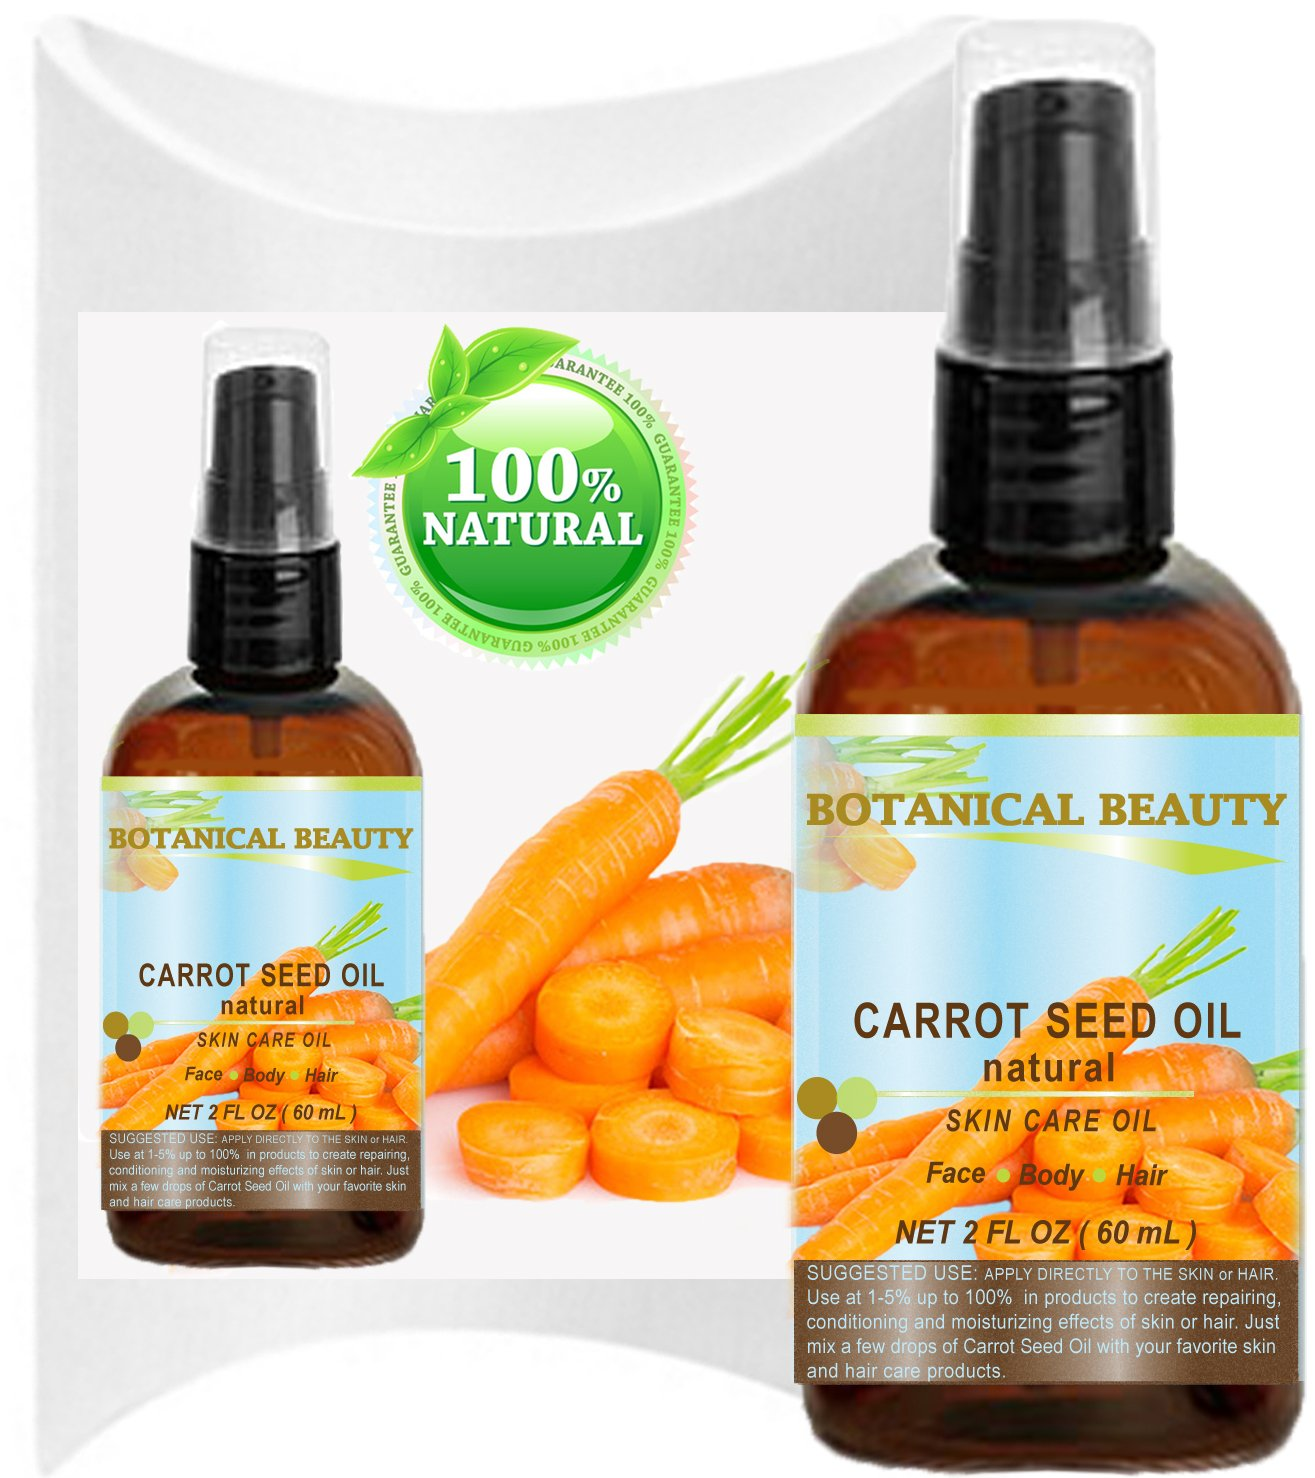 carrier oils for hair. amazon.com : carrot seed oil 100 % natural cold pressed carrier oil. 2 fl.oz.- 60 ml. skin, body, hair and lip care. \ oils for